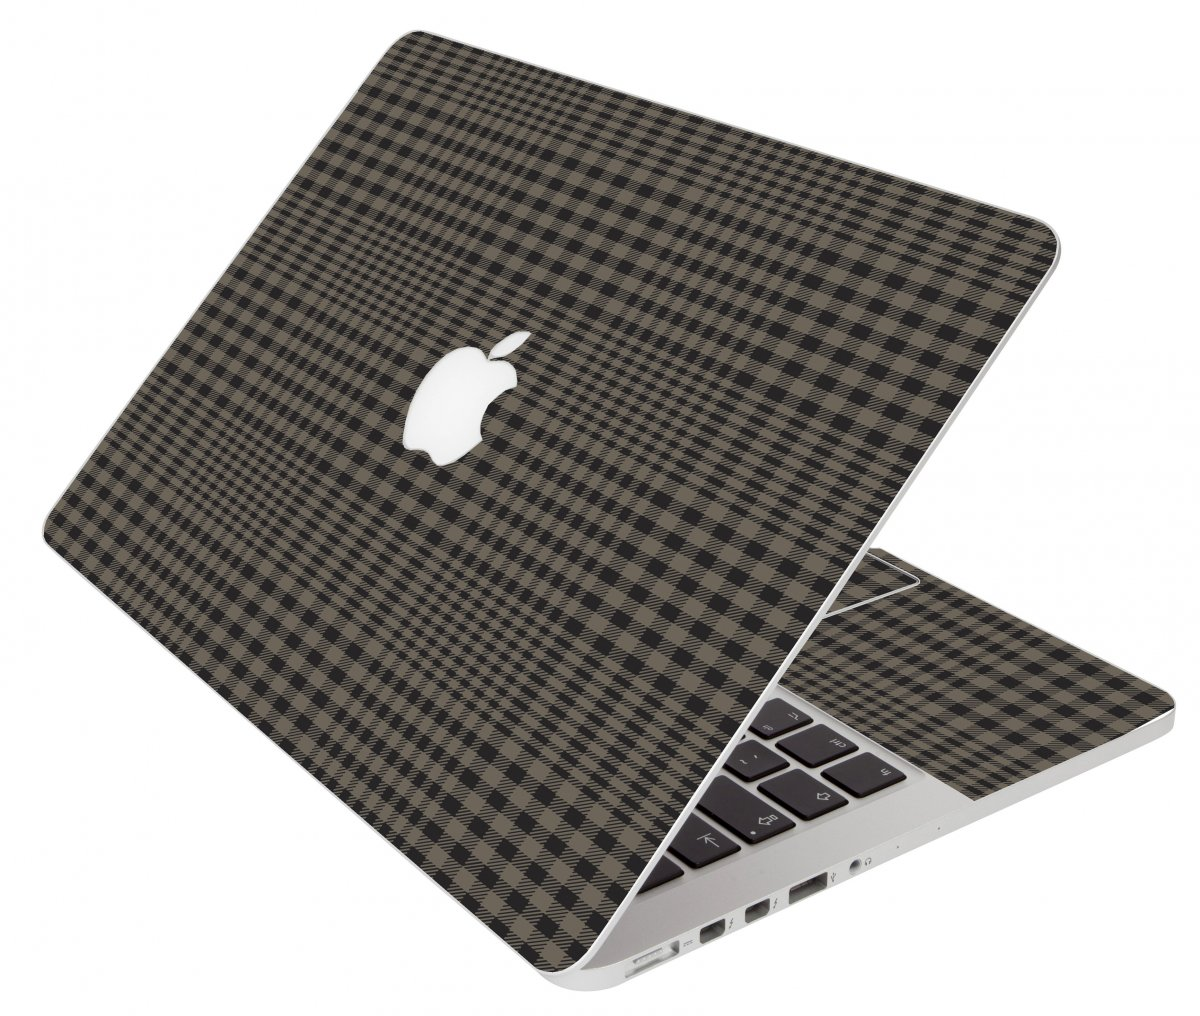 Beige Plaid Apple Macbook Air 11 A1370 Laptop Skin